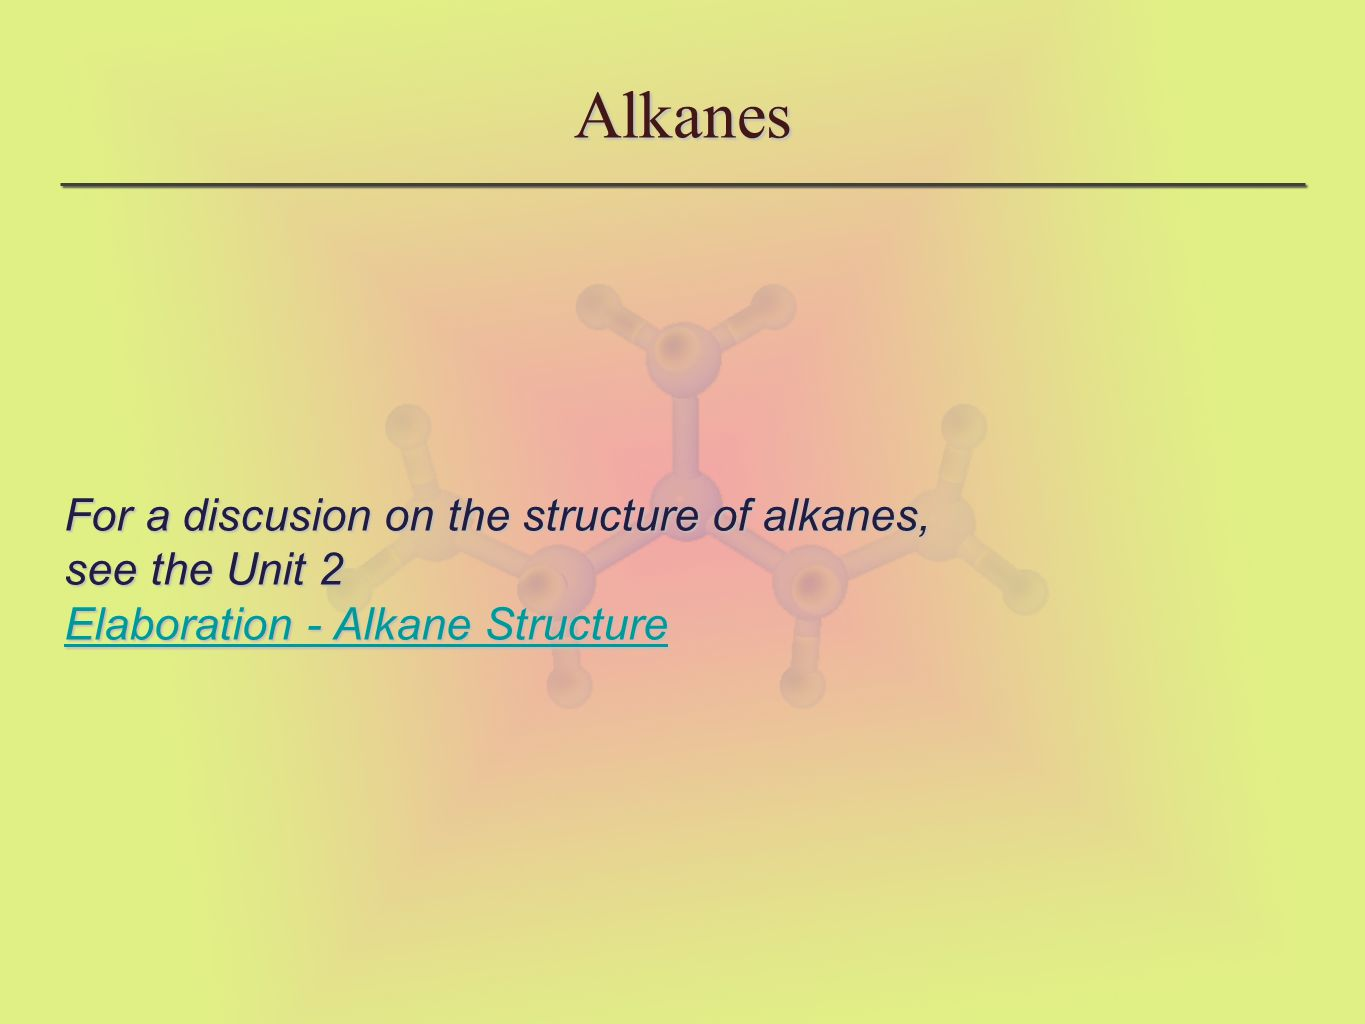 Alkanes For a discusion on the structure of alkanes, see the Unit 2 Elaboration - Alkane Structure Elaboration - Alkane Structure Elaboration - Alkane